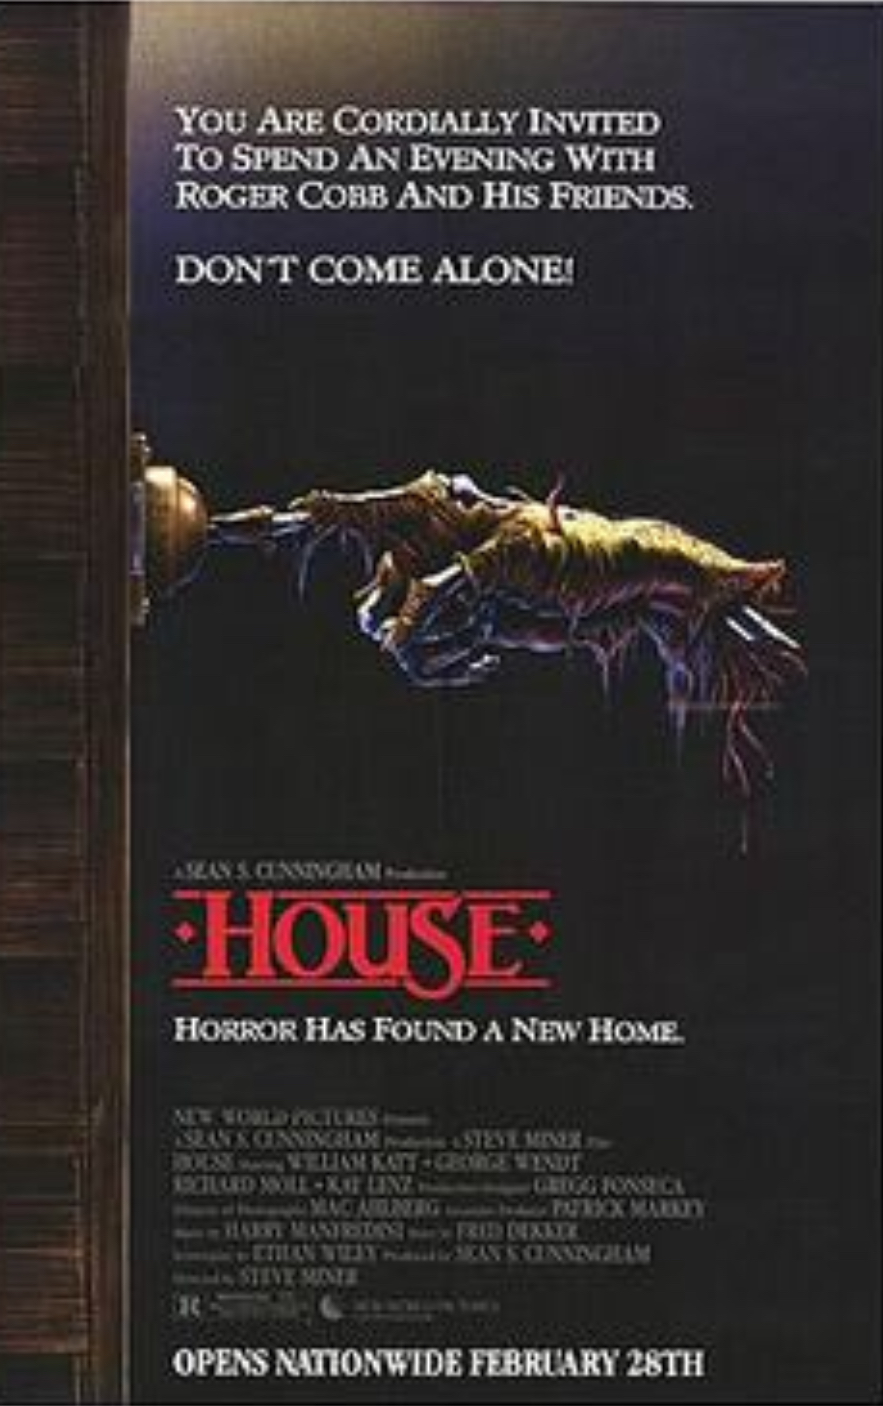 House theatrical poster as was displayed when the movie first came out